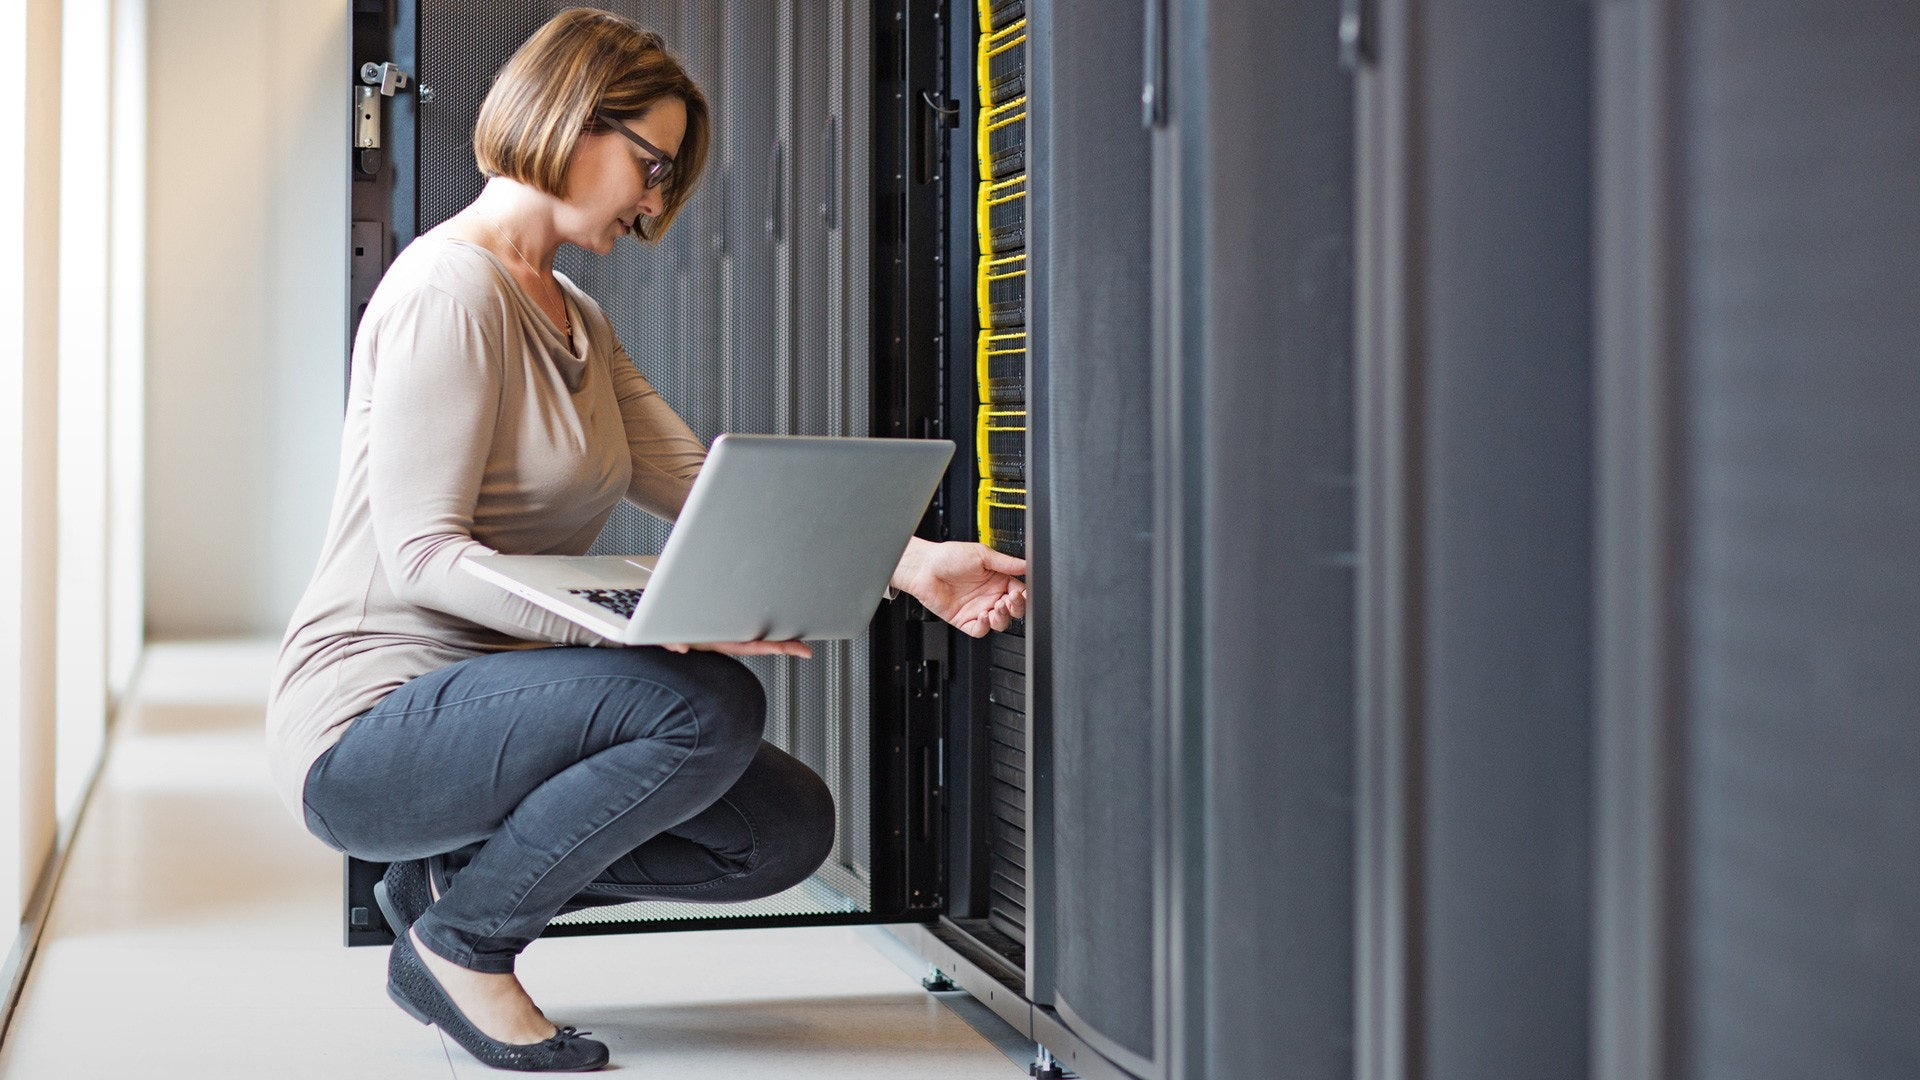 blonde woman with computer crouching down